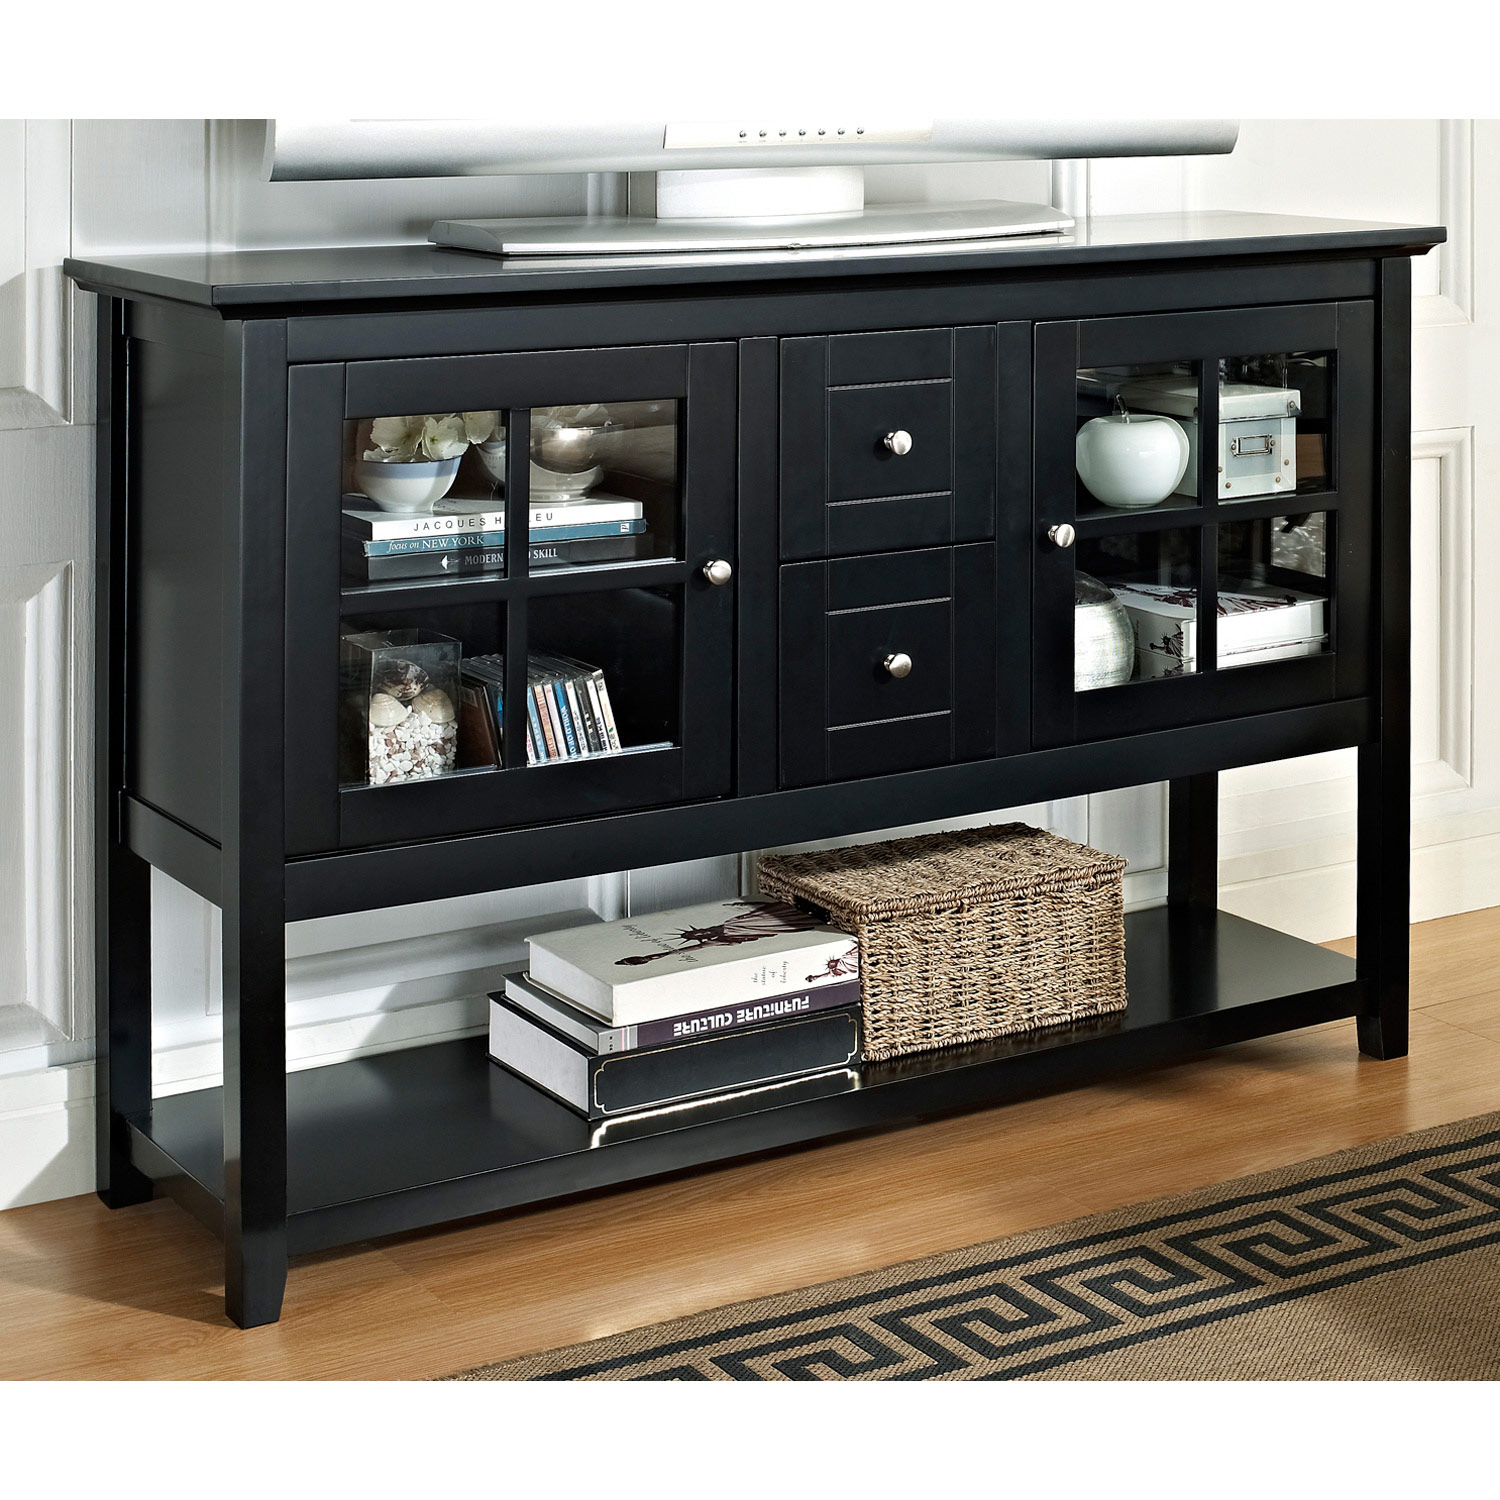 Tall TV Console / Sideboard - Window Pane Doors, Black - WAL-W52C4CTBL